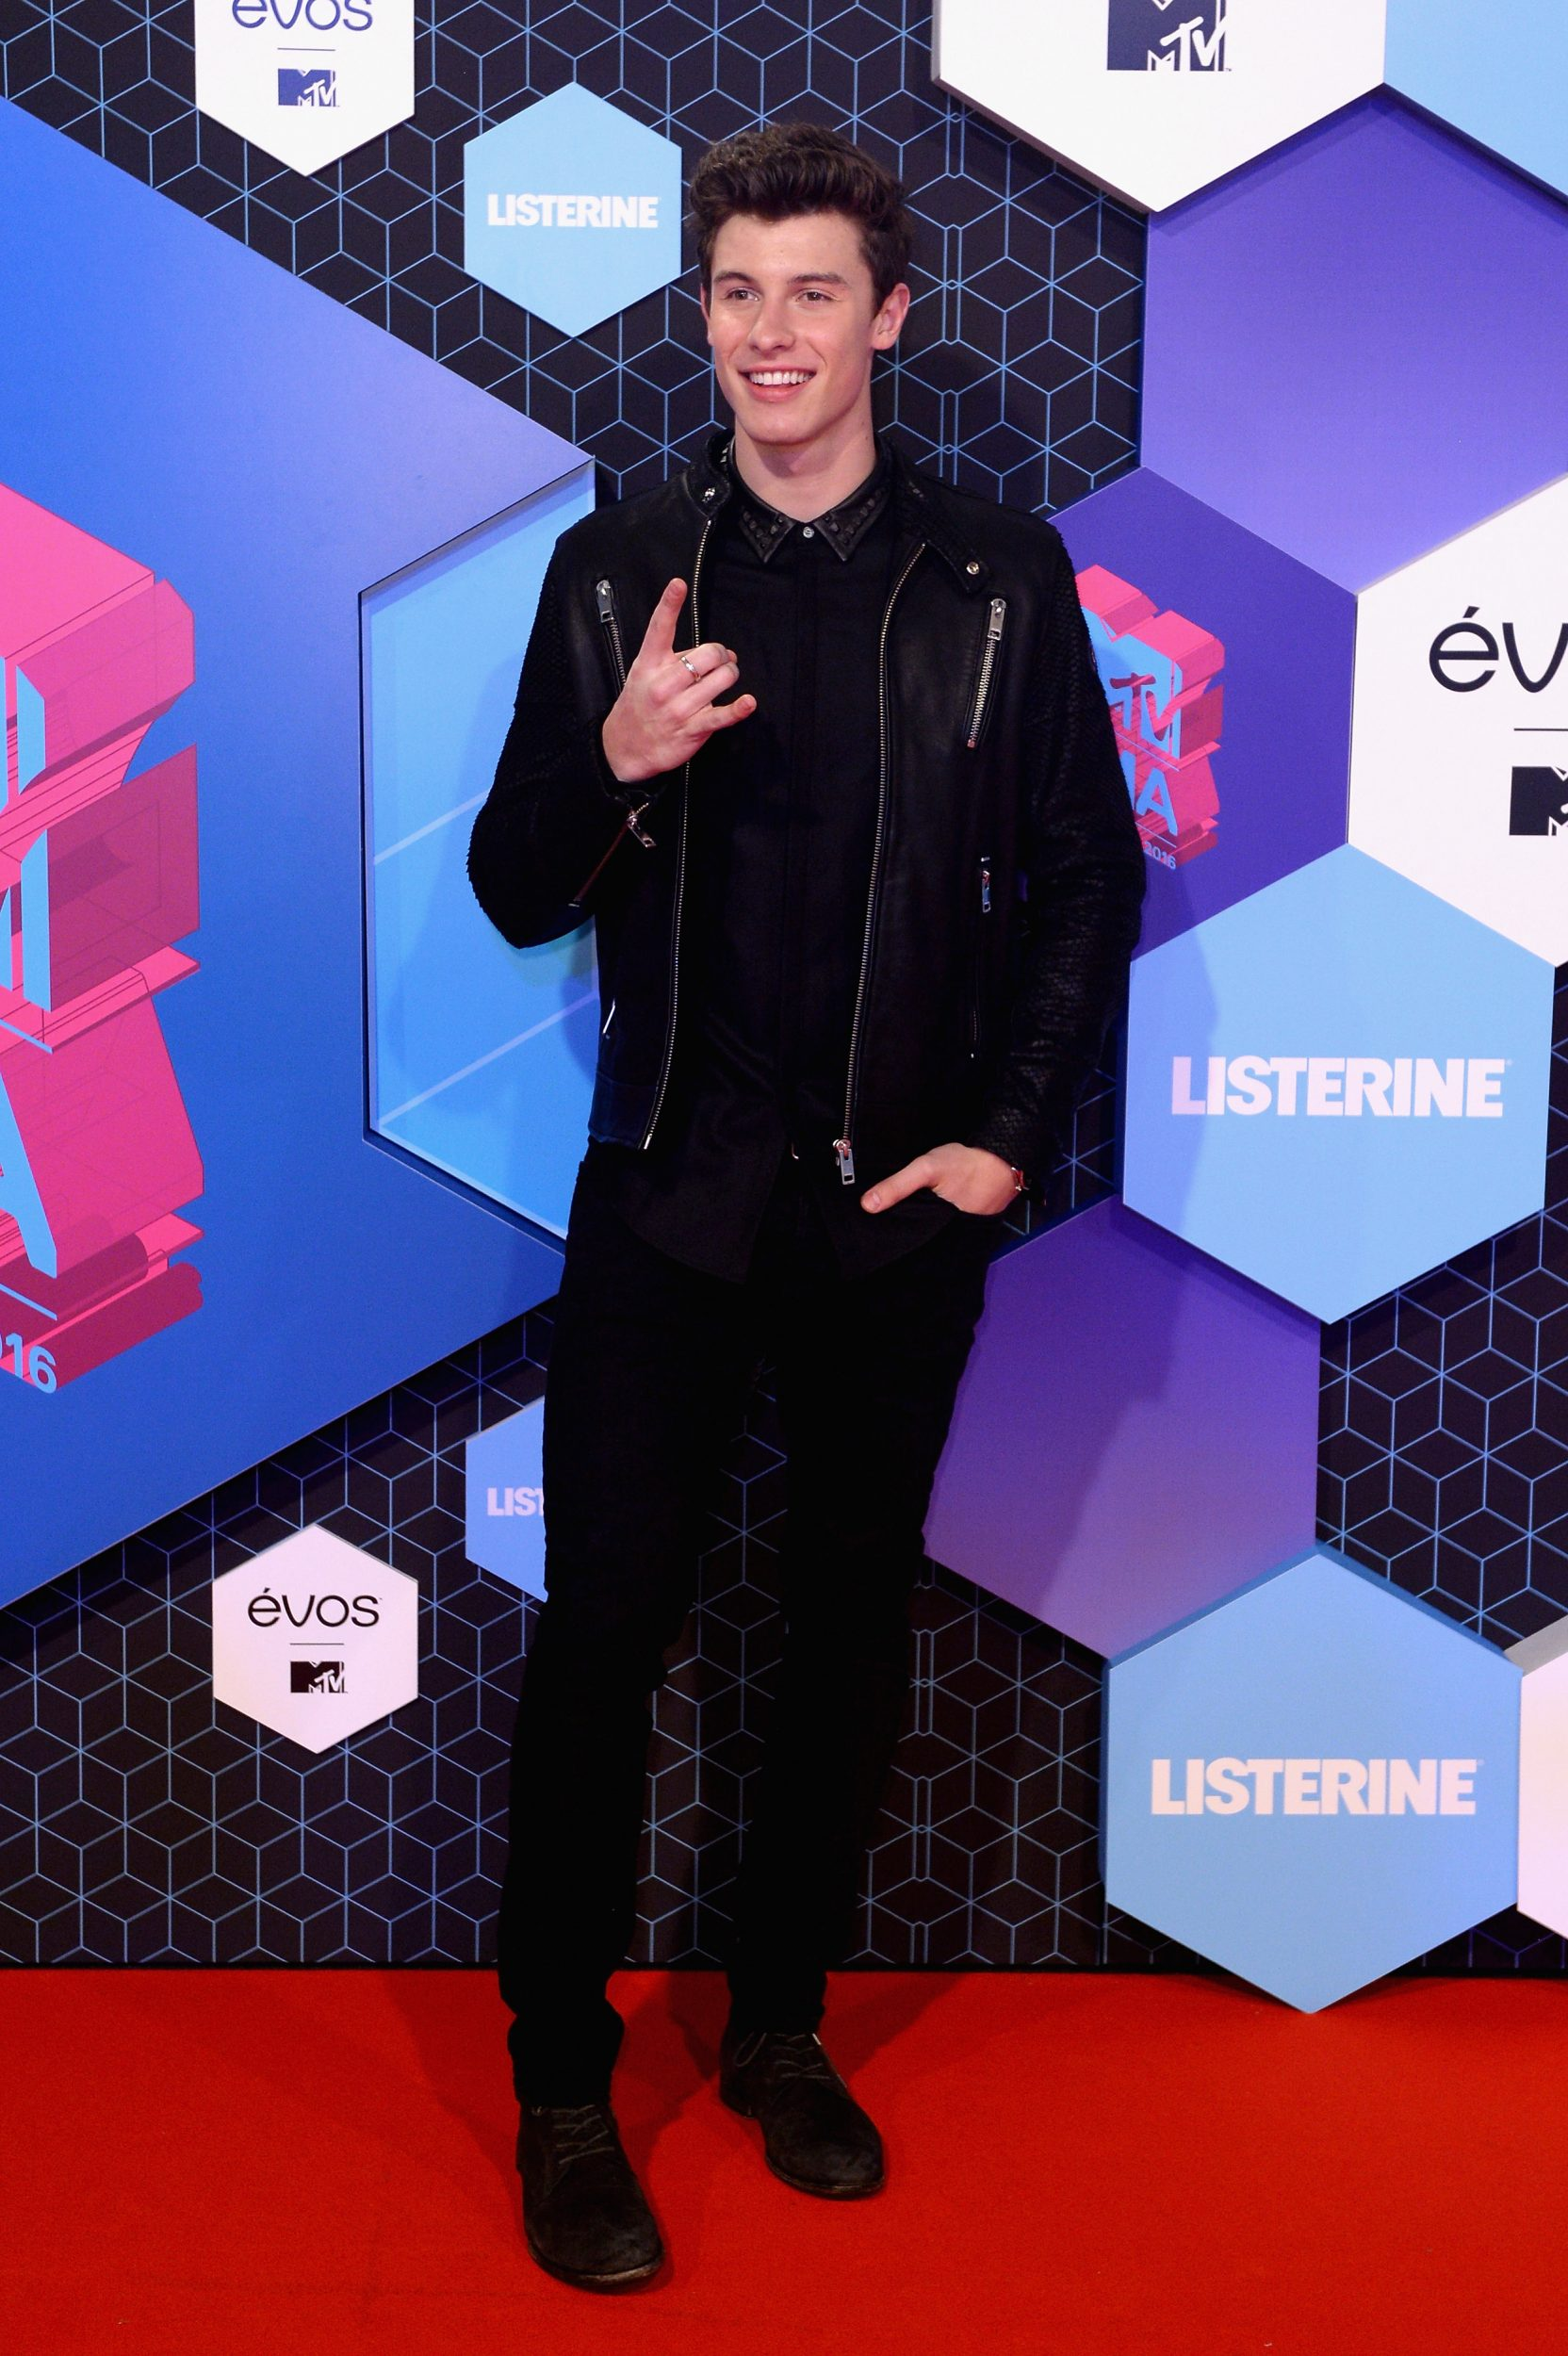 ROTTERDAM, NETHERLANDS - NOVEMBER 06: Singer Shawn Mendes attends the MTV Europe Music Awards 2016 on November 6, 2016 in Rotterdam, Netherlands. (Photo by Anthony Harvey/Getty Images for MTV) *** Local Caption *** Shawn Mendes